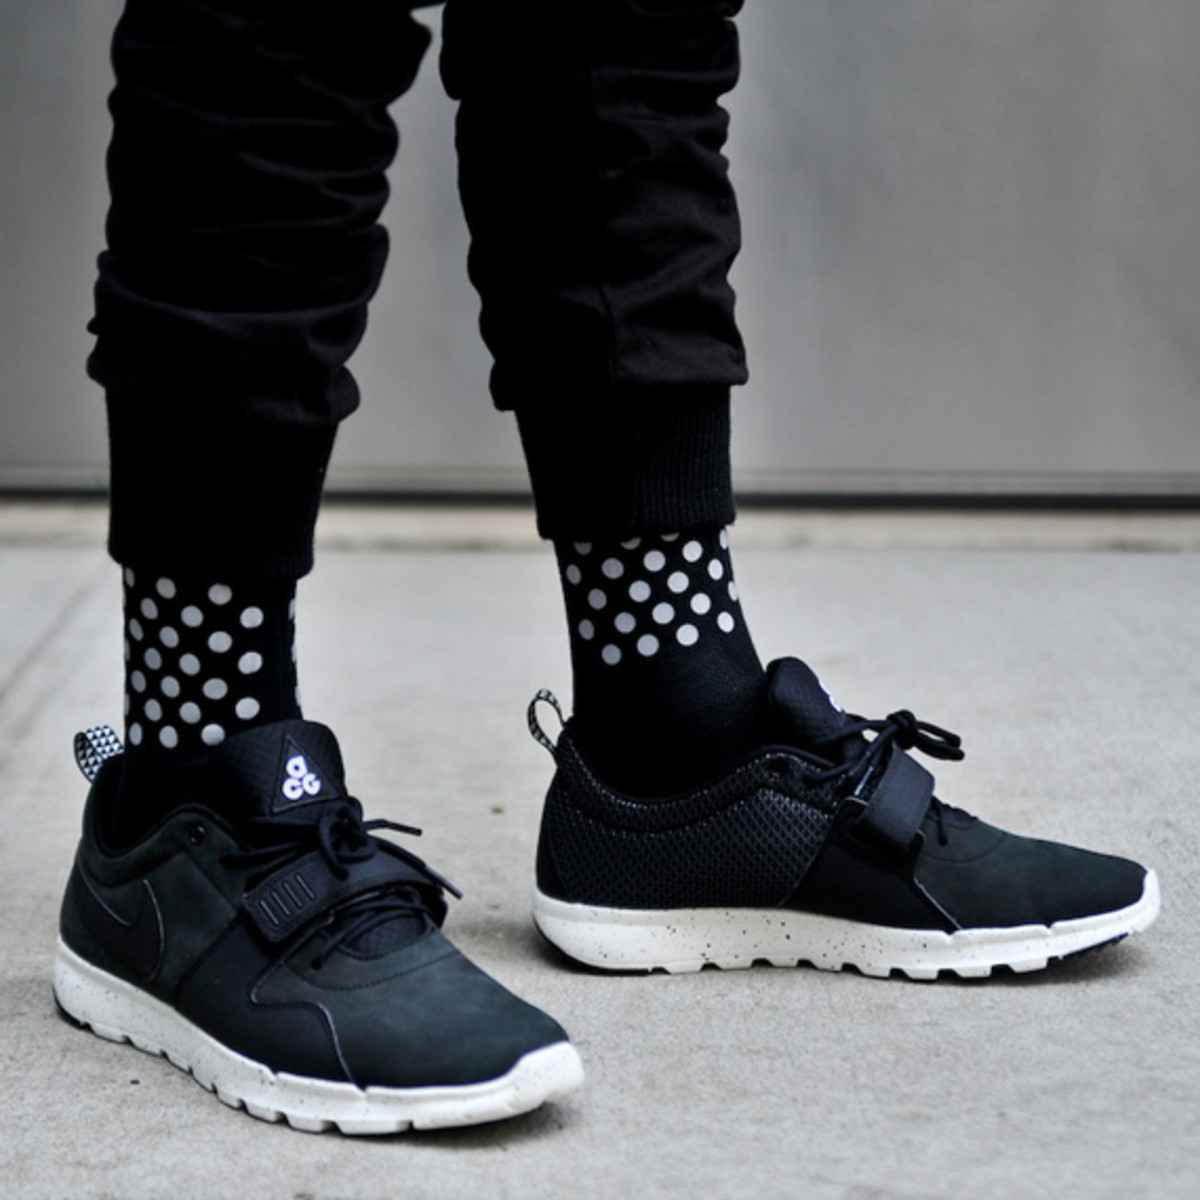 ice-cold-dotted-half-calf-3m-reflective-socks-kith-02